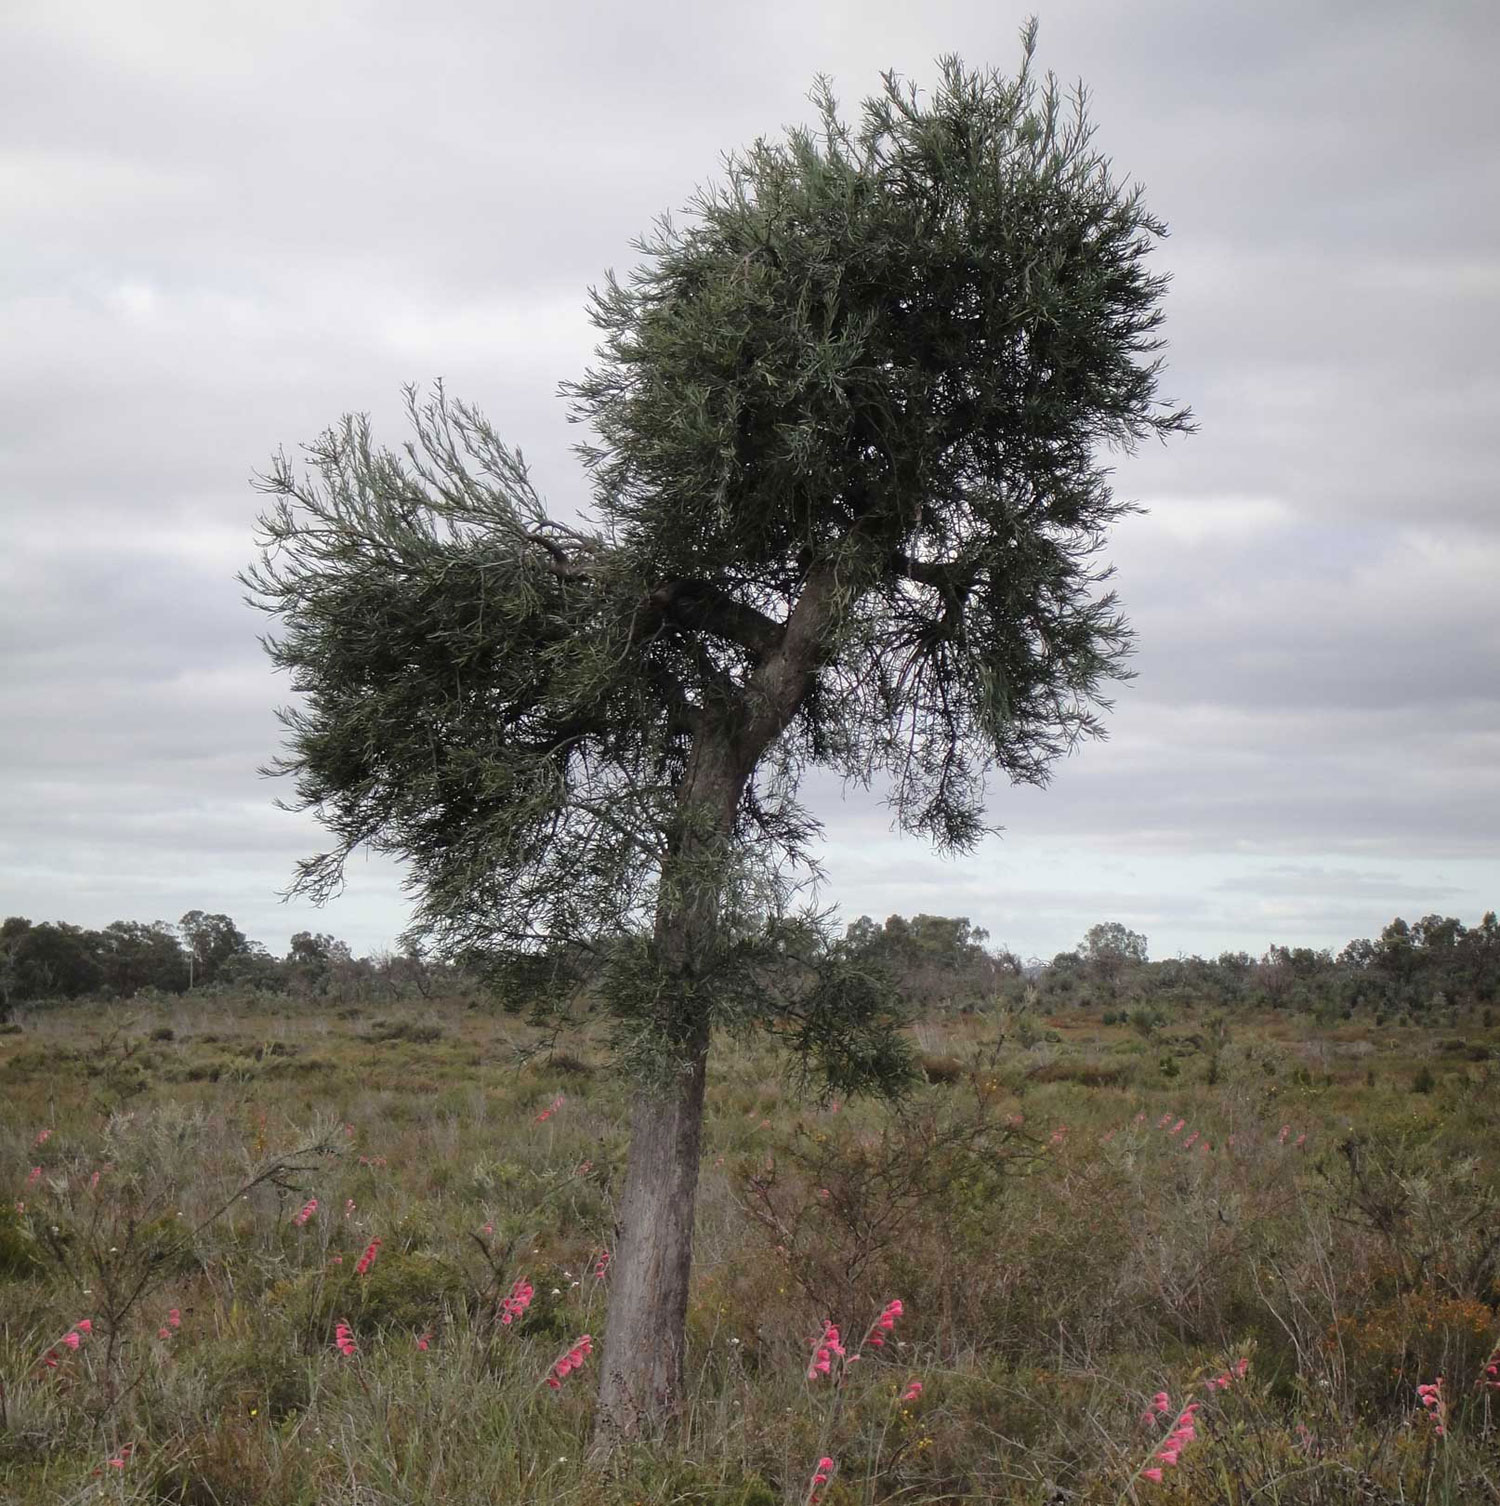 A tree surrounded by shrubland